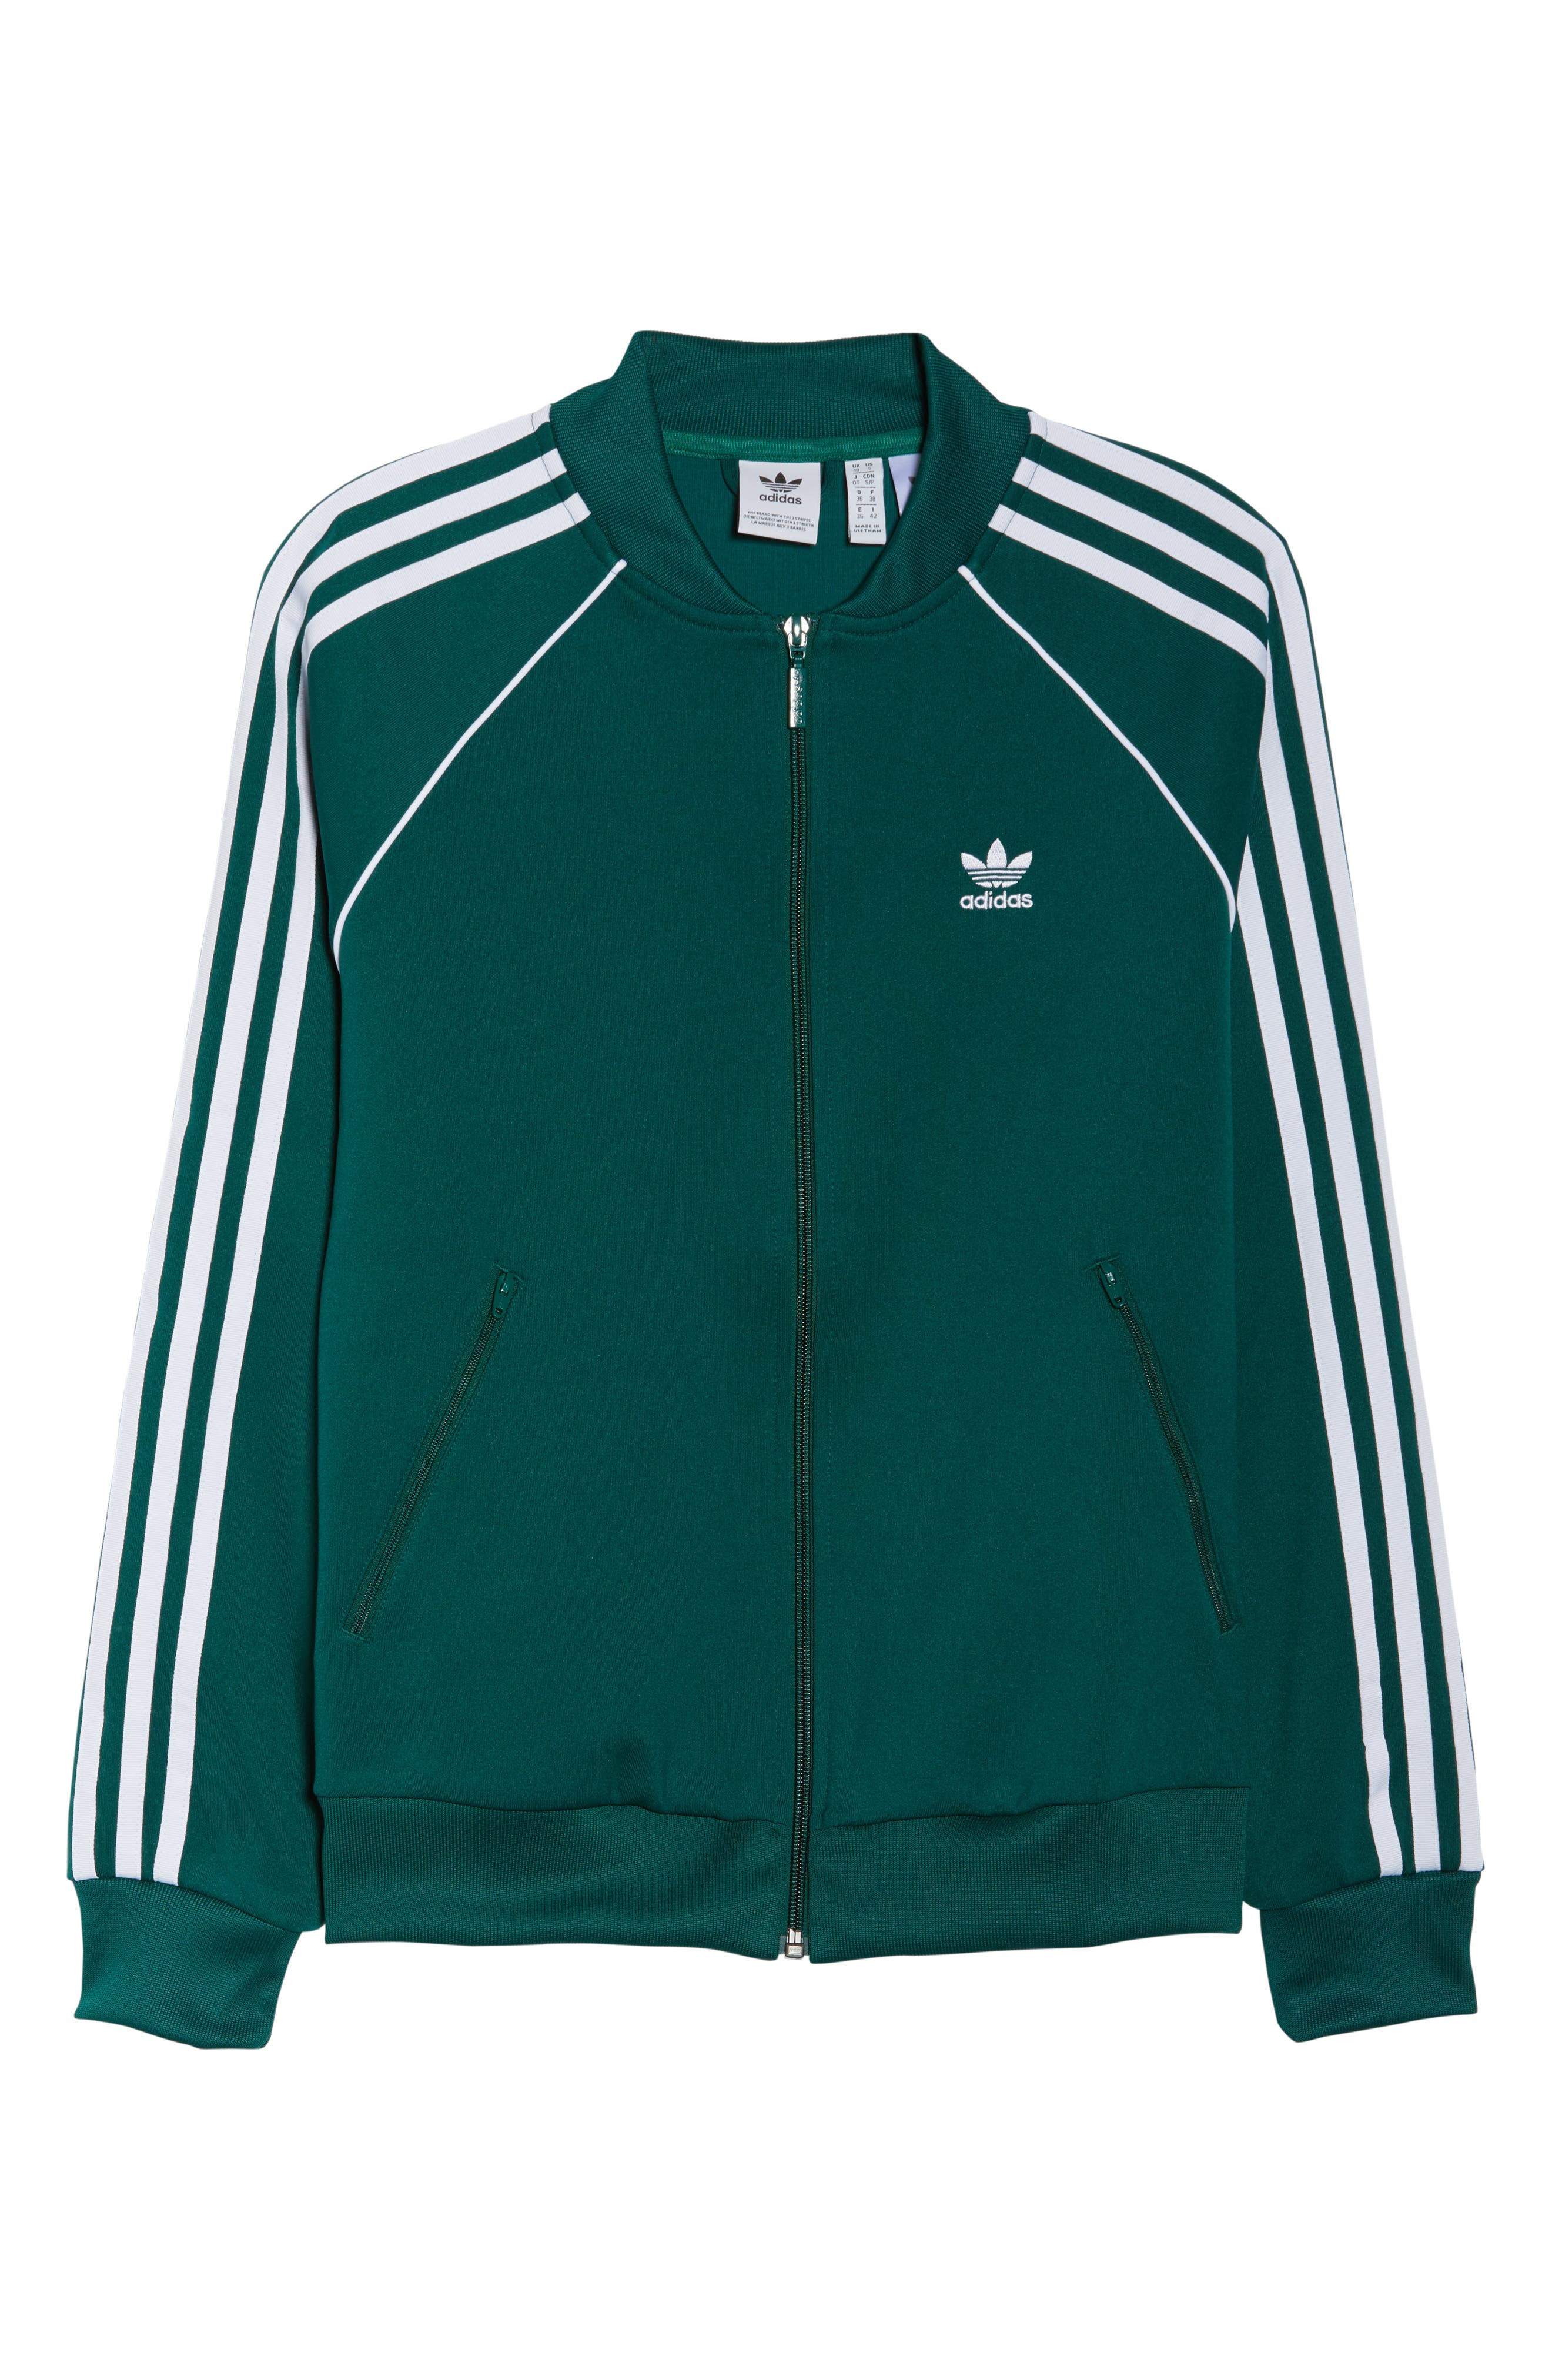 adidas SST Track Jacket,                             Alternate thumbnail 7, color,                             305